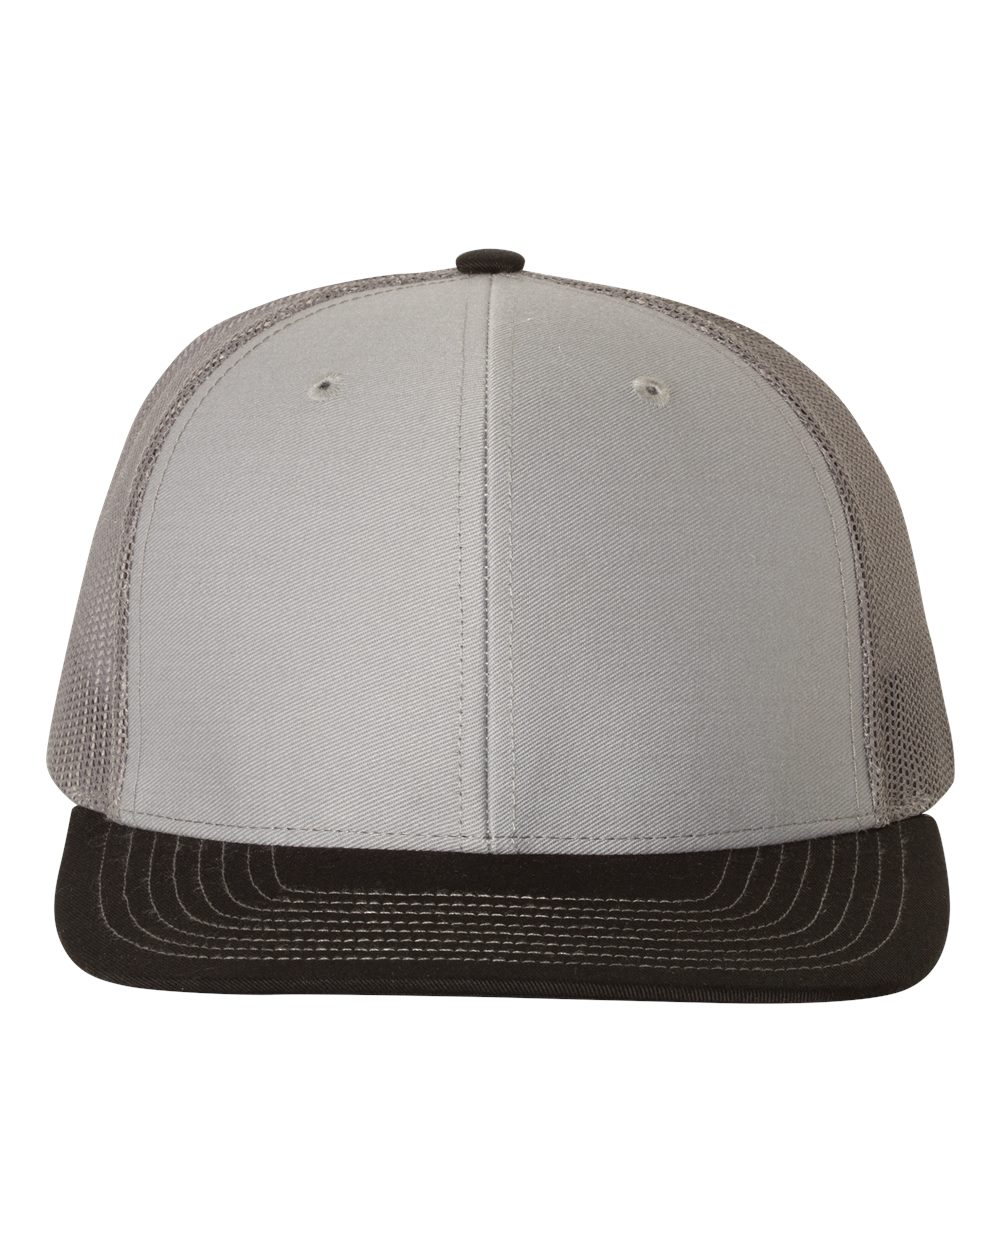 I Will Never Quit Profile Snapback Hat I Am an Electrician Cap